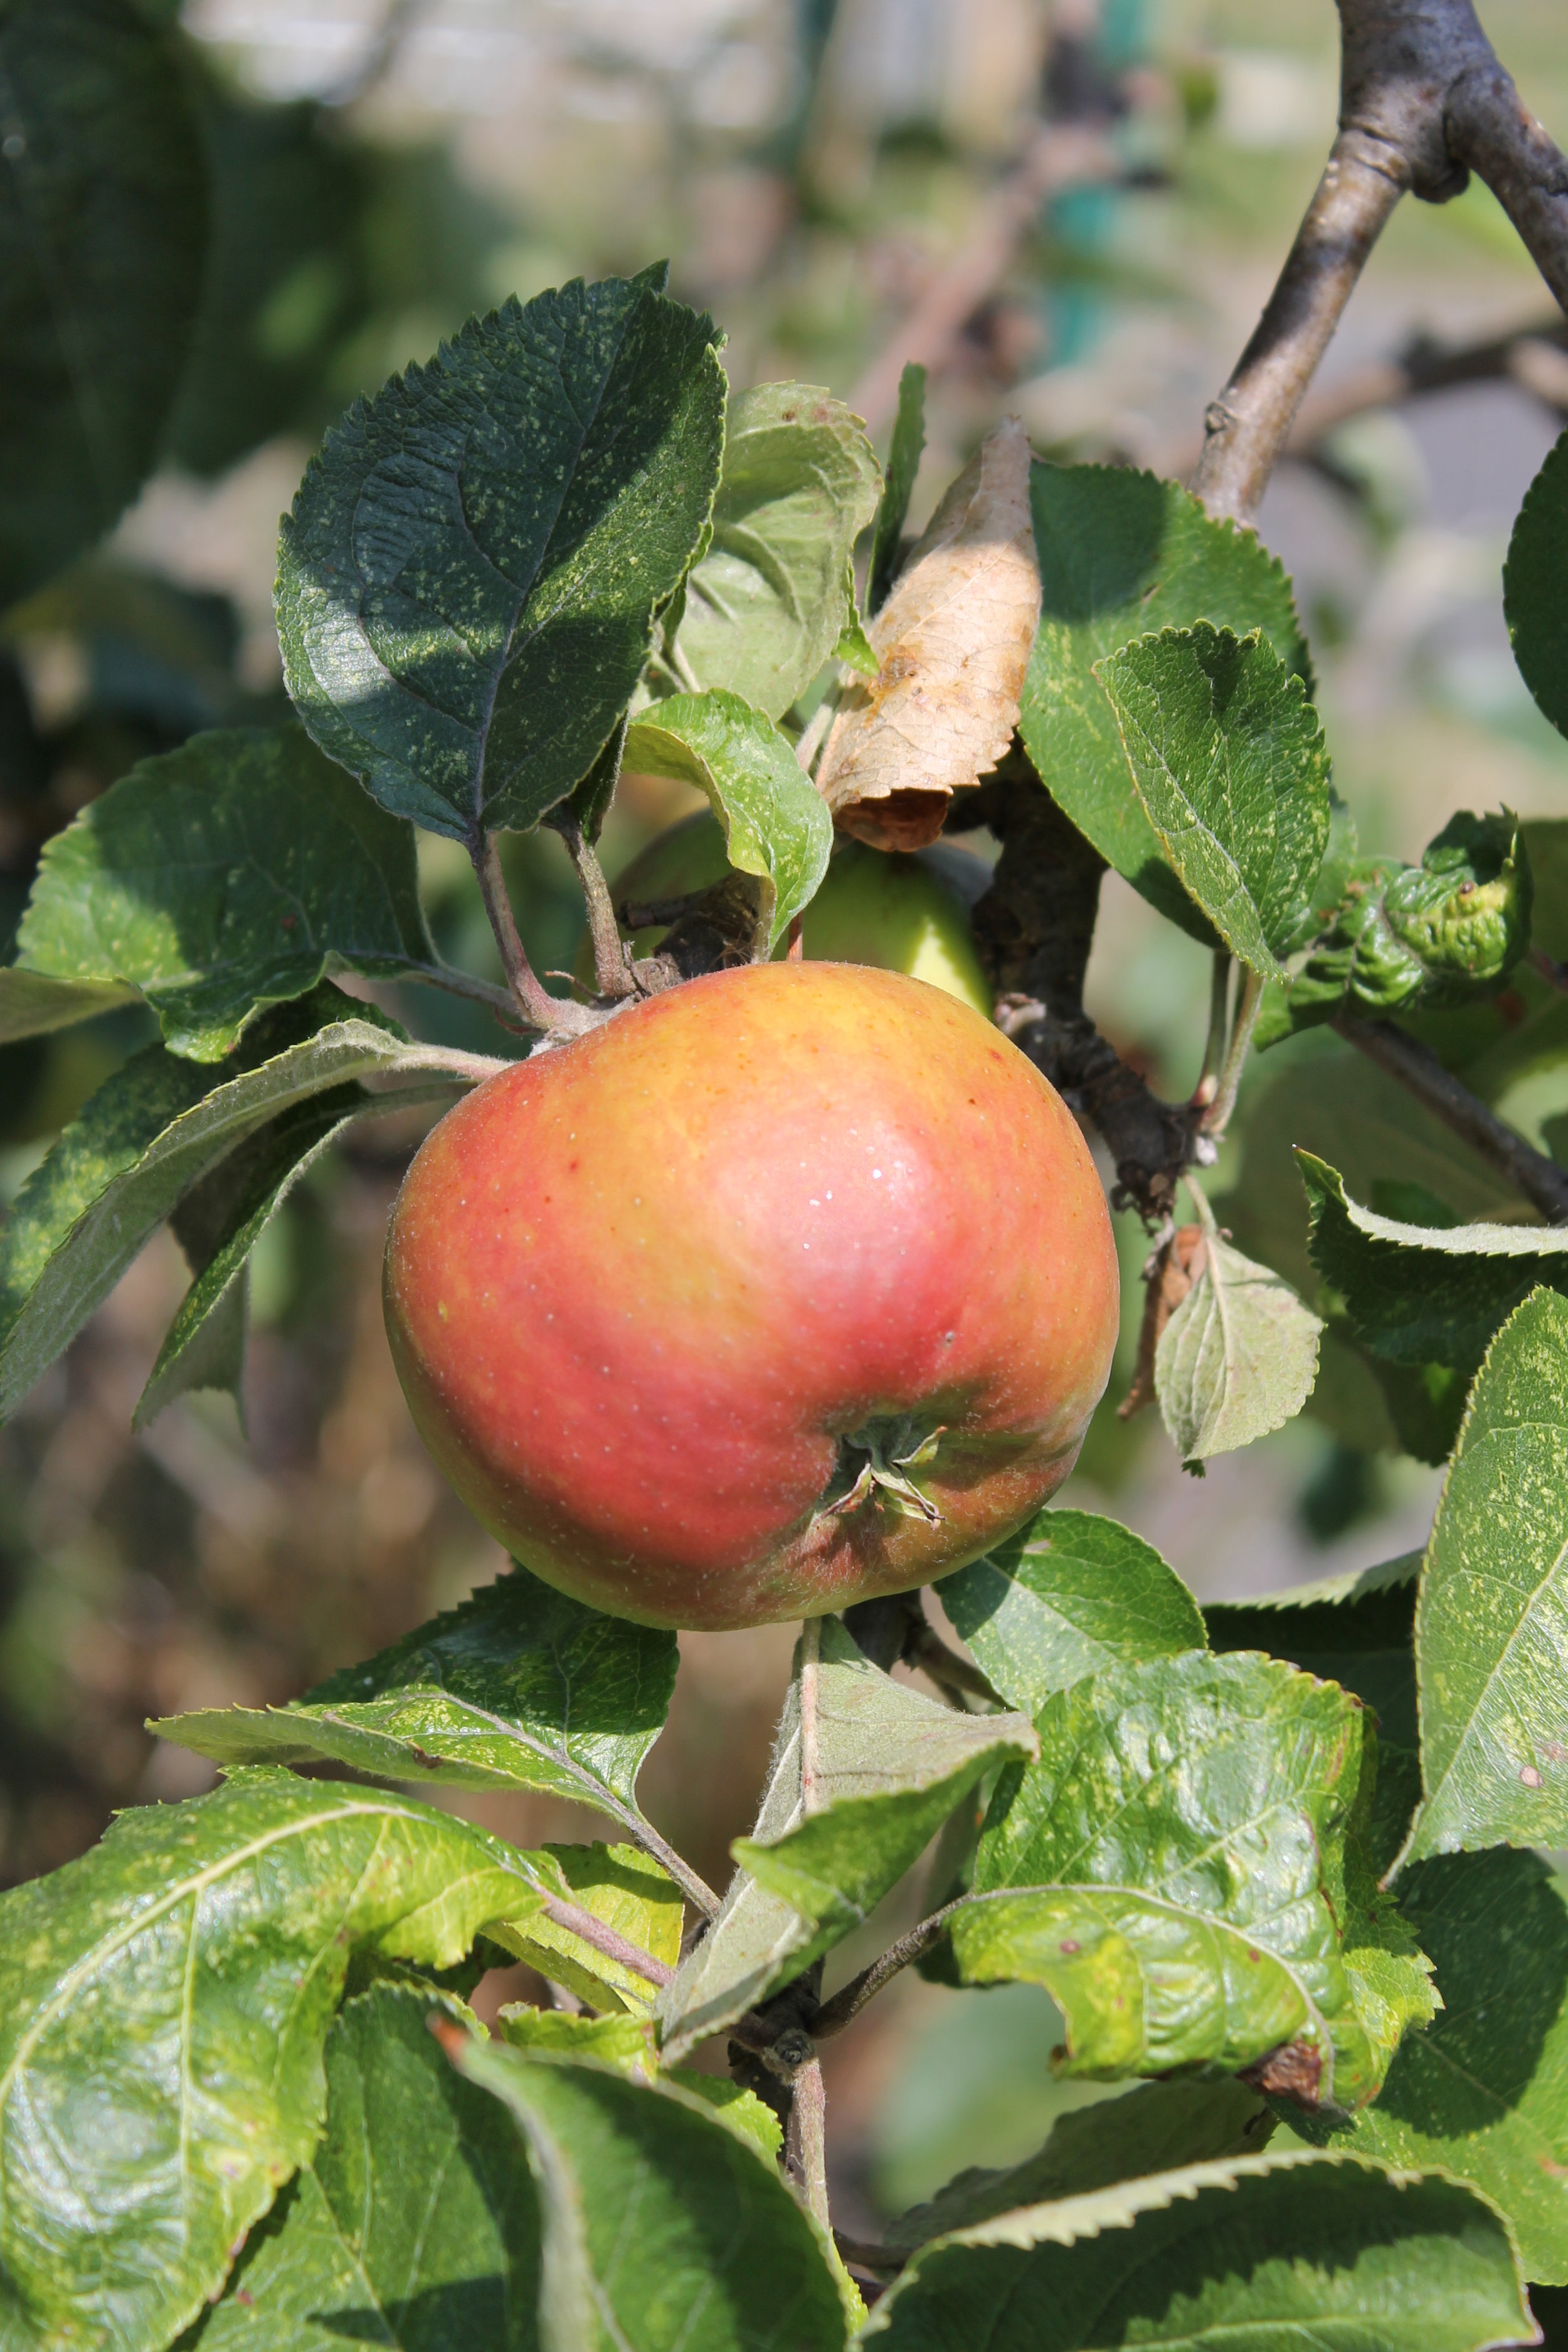 Orchards and Commiunity Projects page